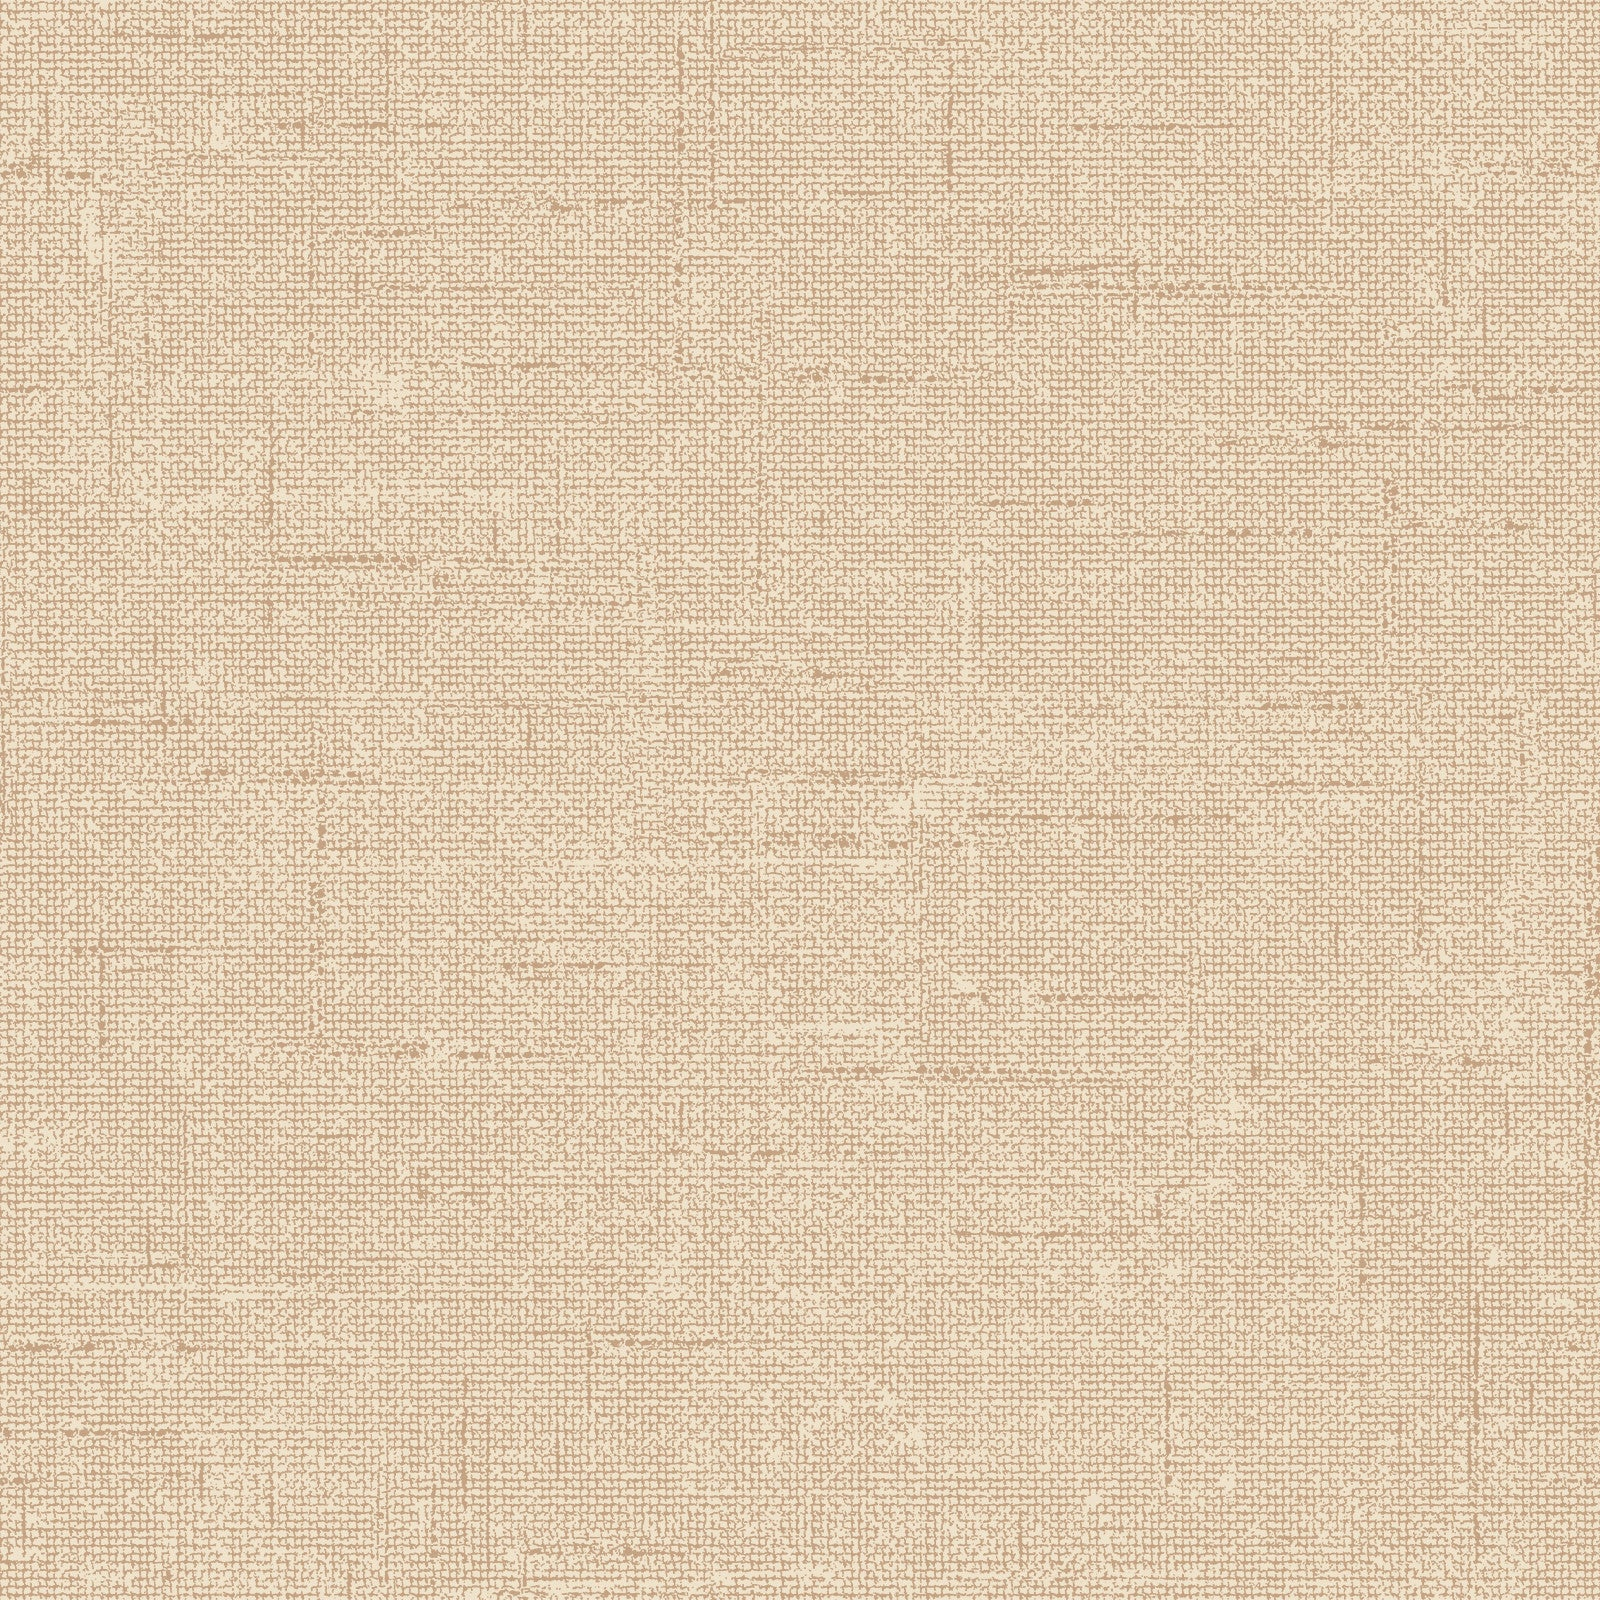 Self Adhesive Wall Paper burlap natural textured self adhesive wallpapertempaper